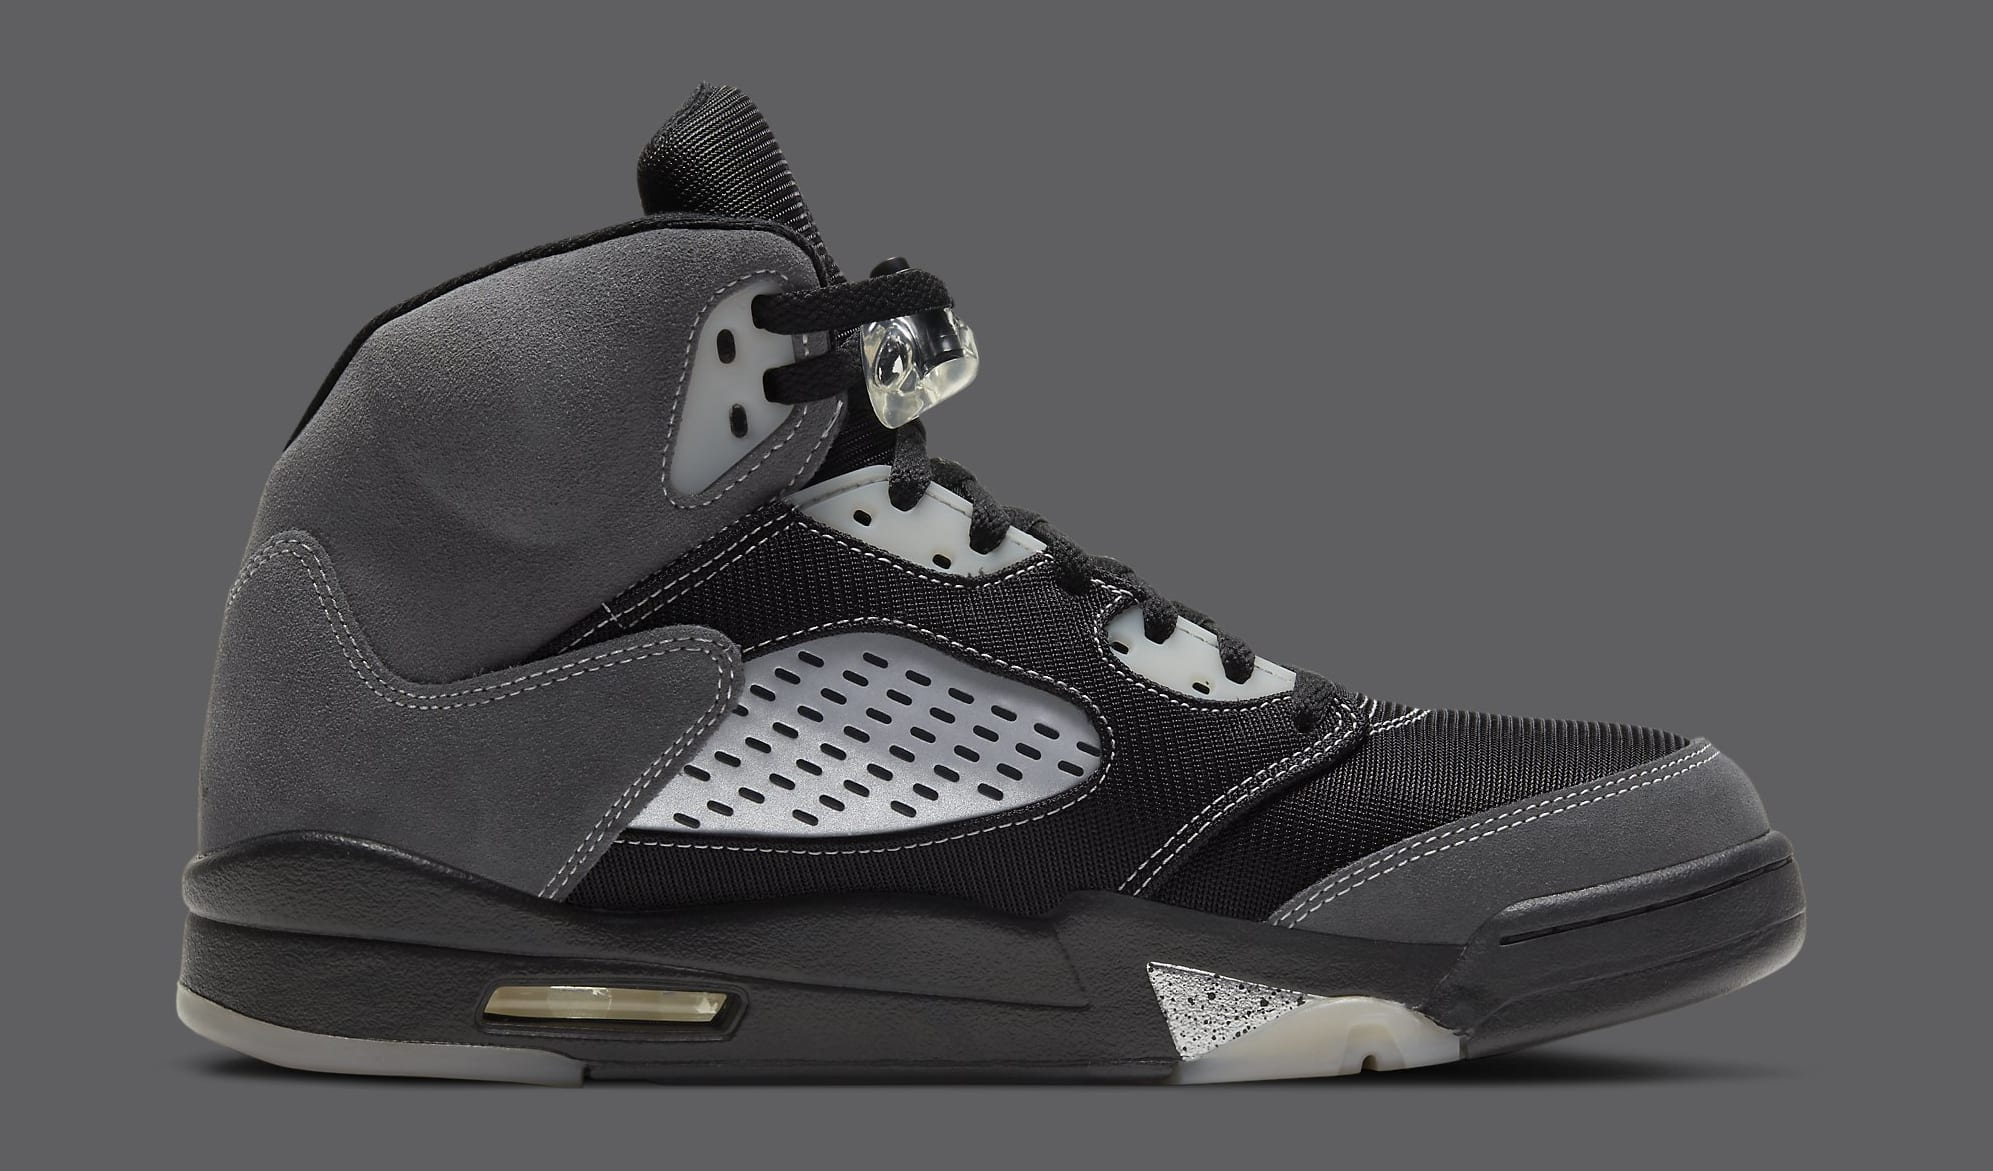 Air Jordan 5 Retro 'Anthracite' DB0731-001 Medial